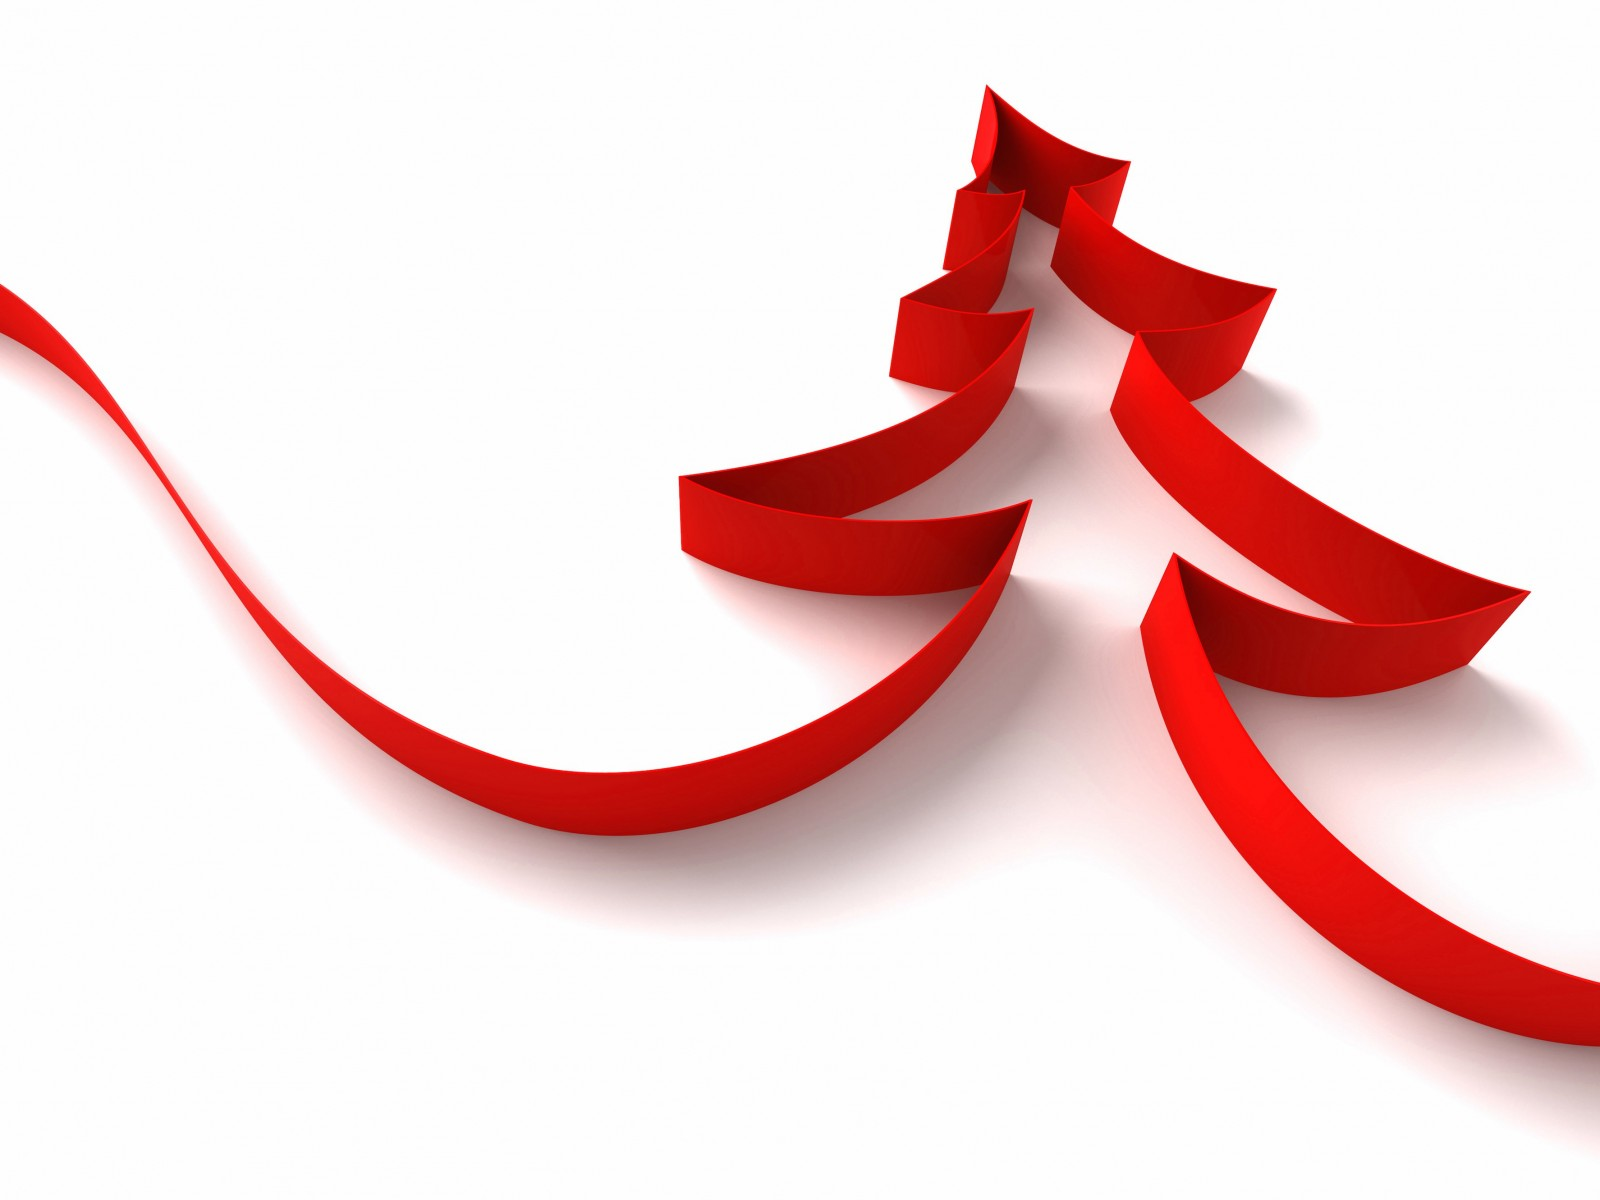 Red Ribbon Christmas Tree Wallpaper for Desktop 1600x1200